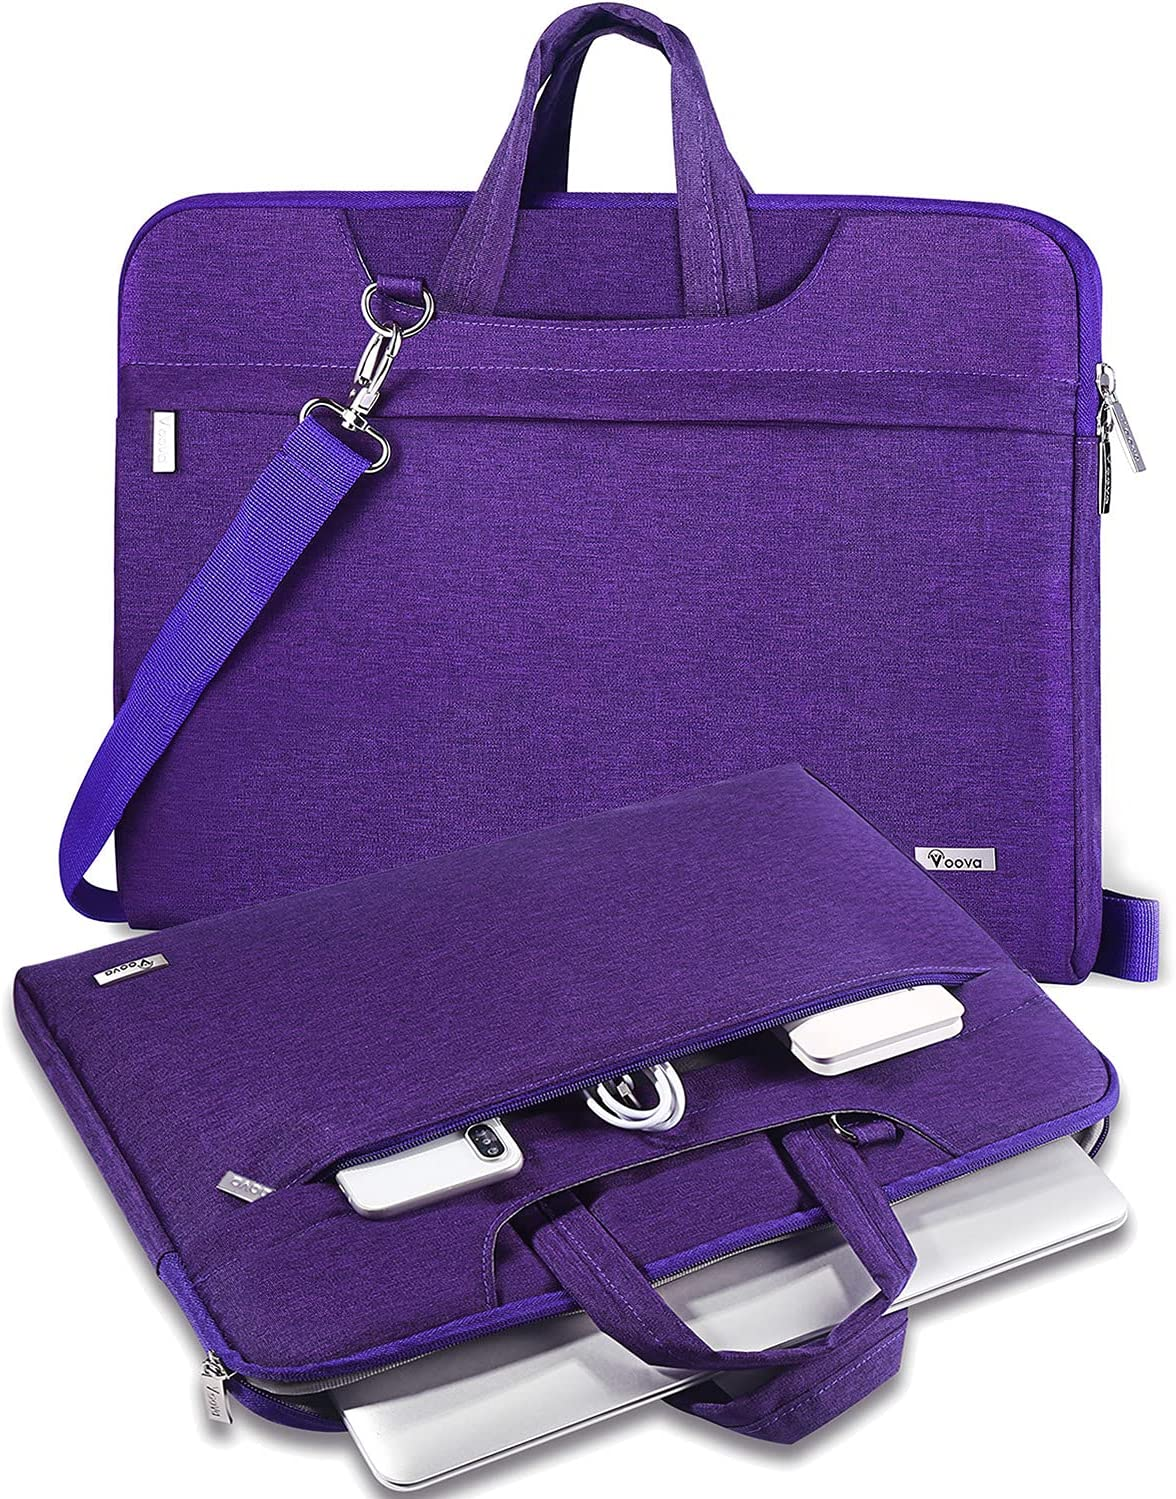 V Voova Laptop Bag Case 13 13.3 Inch with Shoulder Stap,Slim Computer Sleeve Compatible with 2018-2021 MacBook Air/Pro M1,13.5 Surface Book 3/Laptop 4,Chromebook,XPS 13,Jumper 13.3 Notebook,Purple